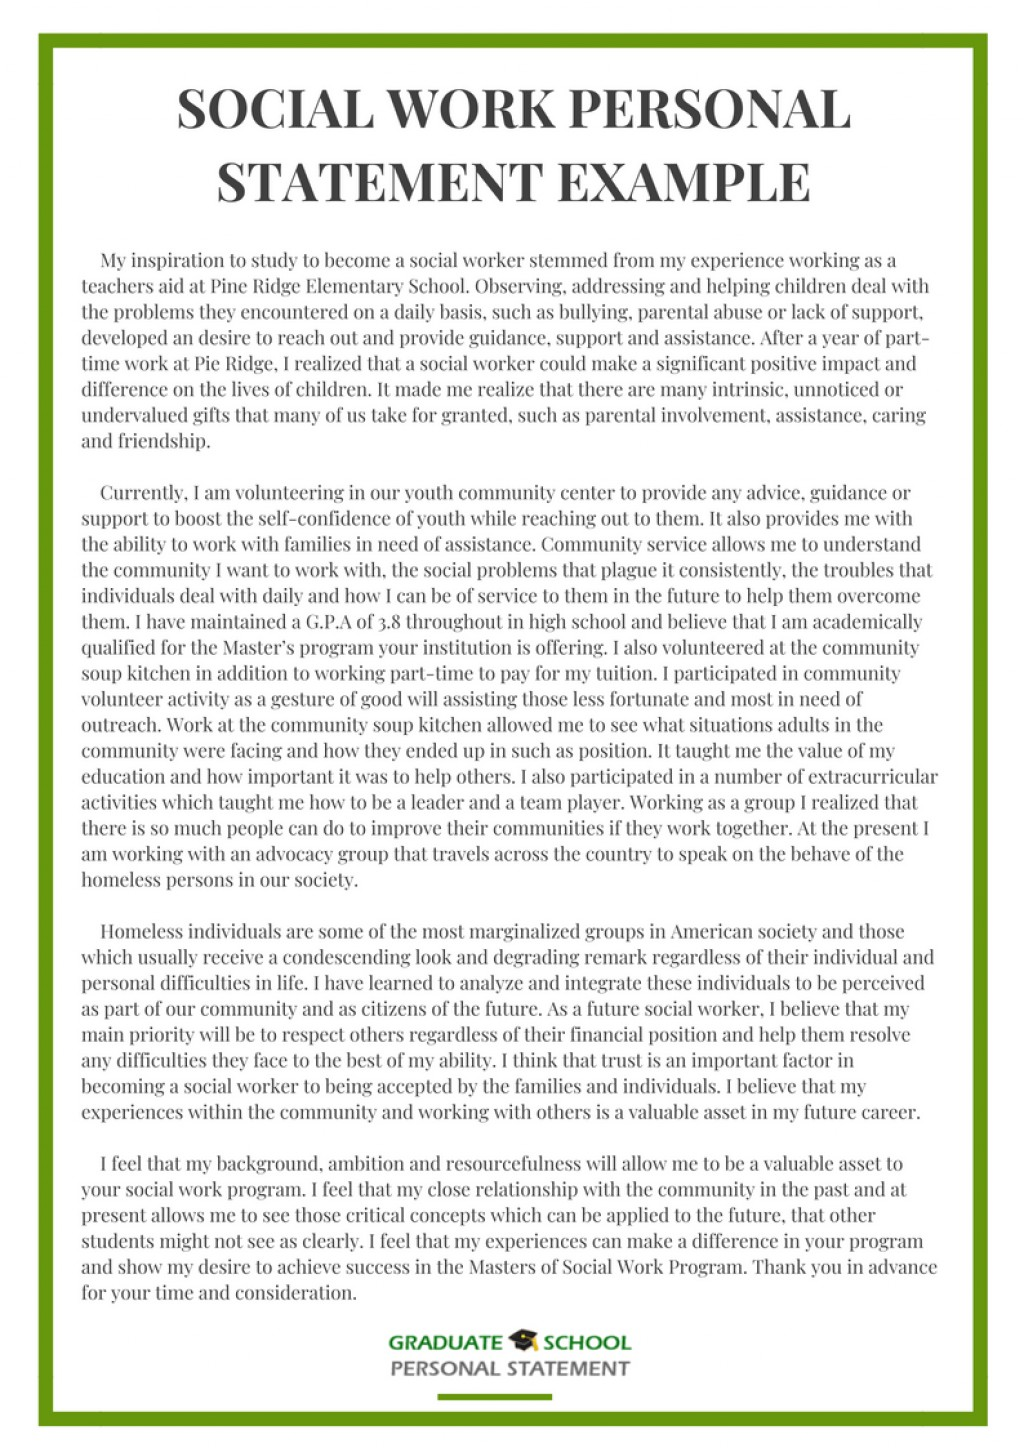 008 Social Work Personal Statement Essay Example From Graduate School Experts Grad Rare Large